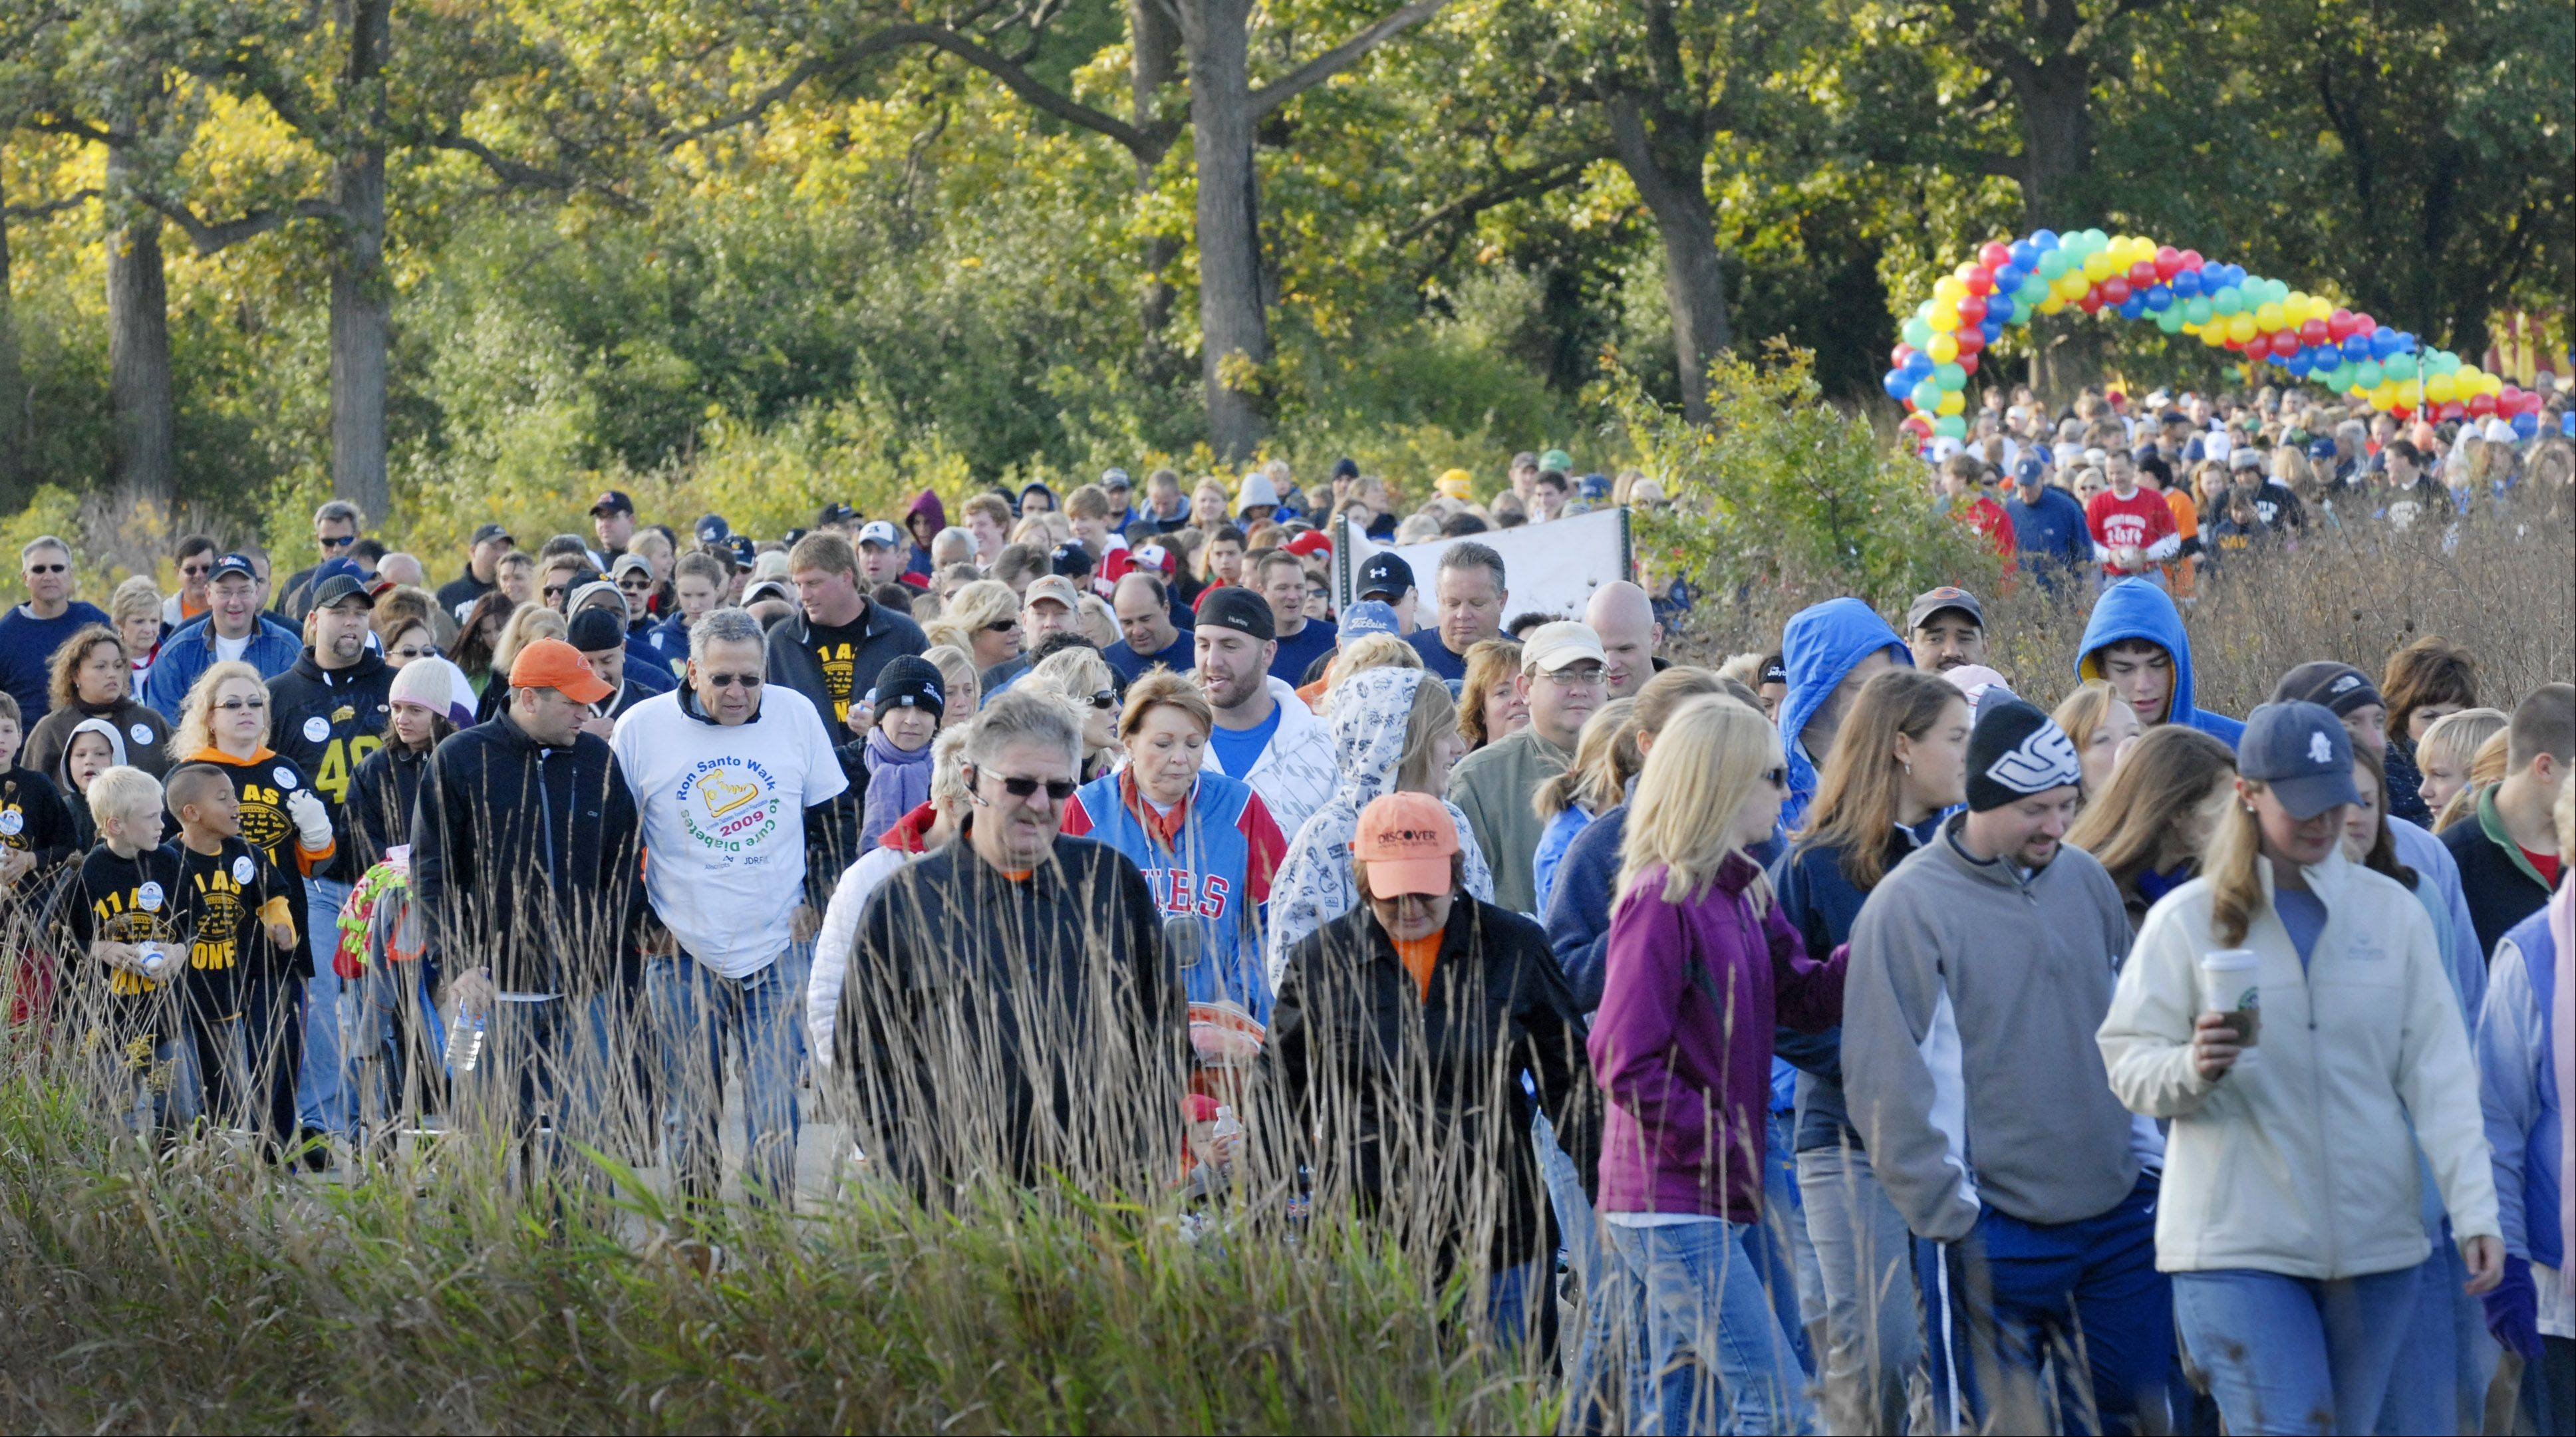 Ron Santo Walks in three suburban locations — including Independence Grove Forest Preserve in Libertyville — and on Chicago's lakefront will draw thousands of participants who help raise more than $4 million annual through the Illinois chapter of JDRF.